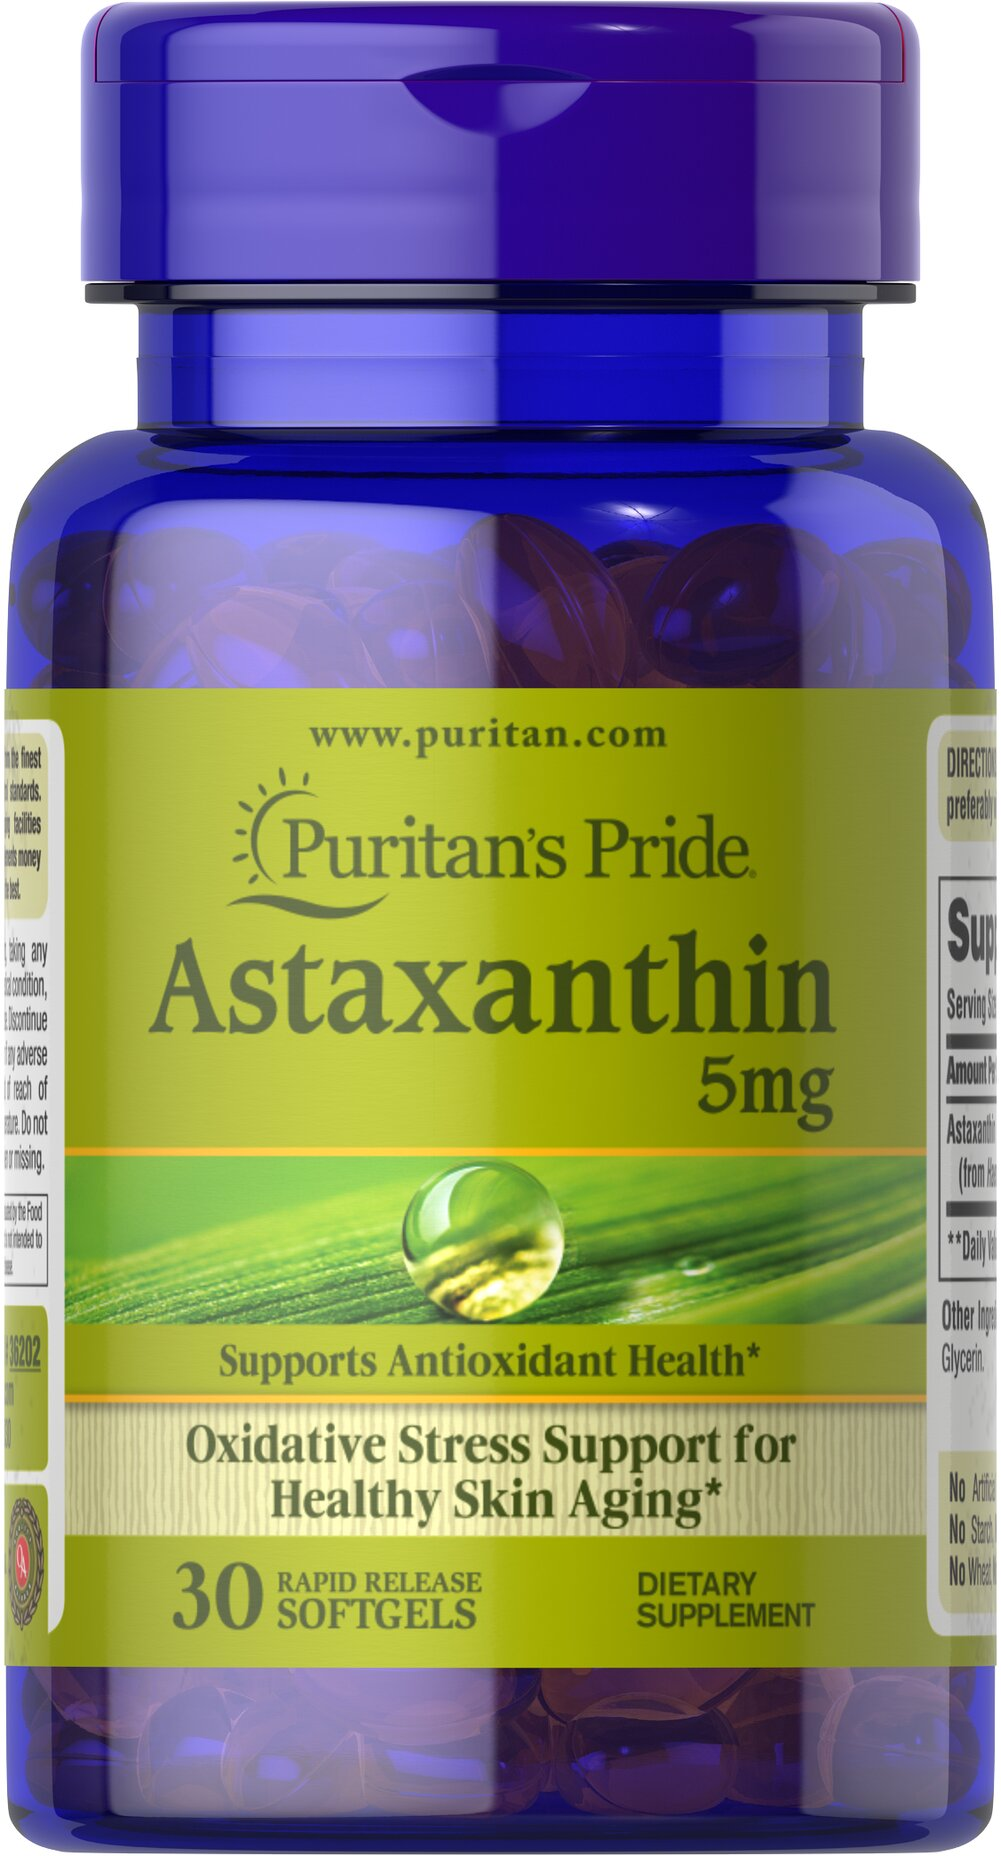 Astaxanthin 5 mg <p>Astaxanthin promotes antioxidant health, which helps fight the cell damaging free radicals that can lead to oxidative stress which may contribute to the premature aging of cells.**</p><p></p><p></p> 30 Softgels 5 mg $19.99